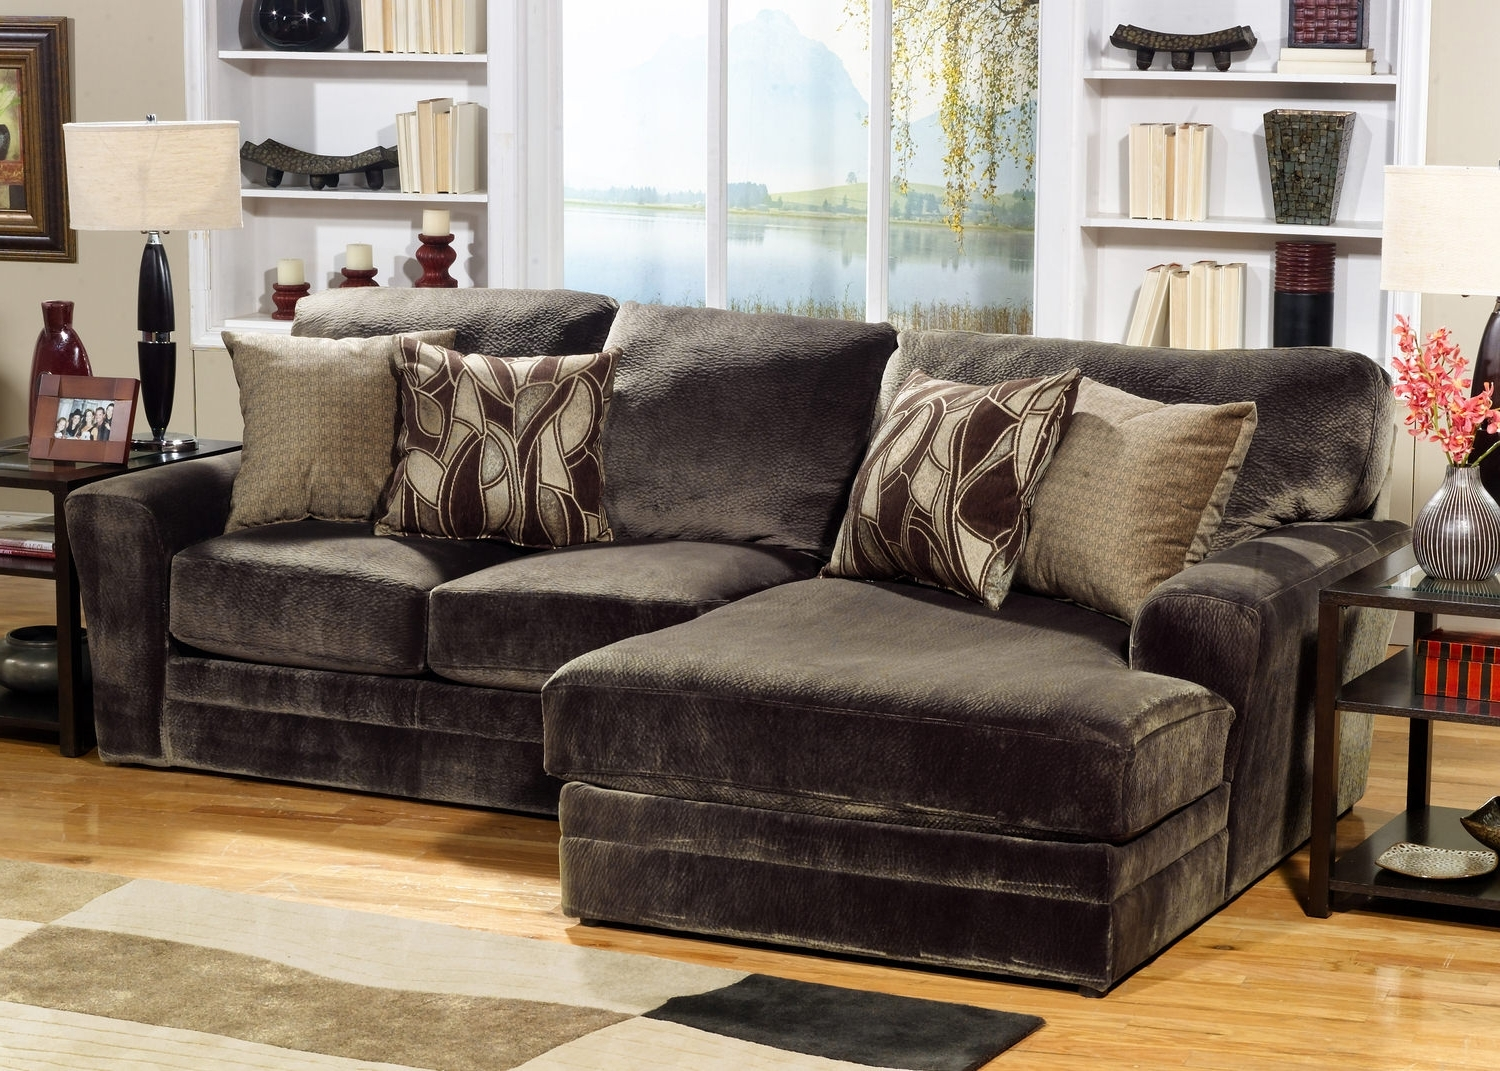 Hom Furniture With Regard To Famous St Cloud Mn Sectional Sofas (View 18 of 20)